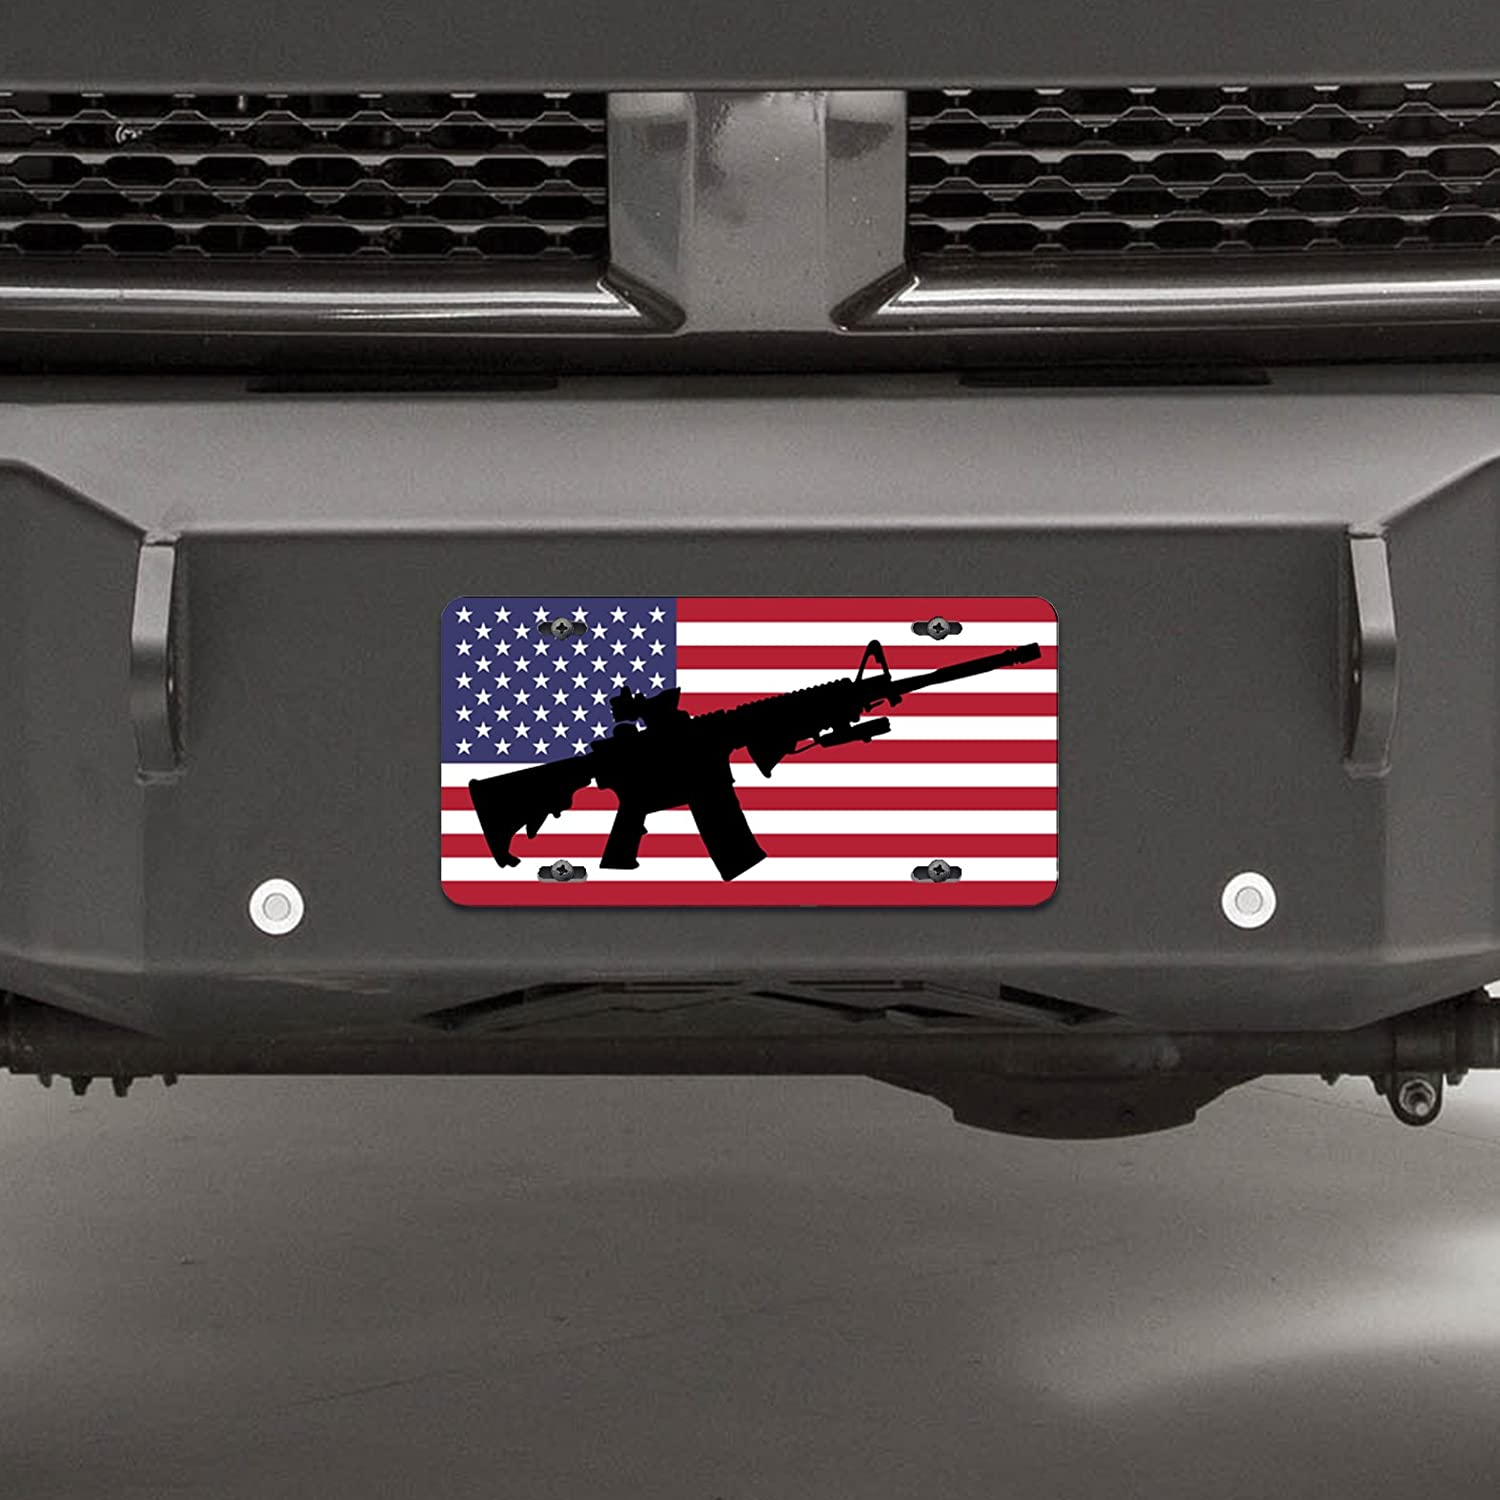 Three Percenters 3/% Army Navy Marines Air Force Special Ops III Military American Flag License Frame Plate AR-15 Molon Labe AR15 UV005